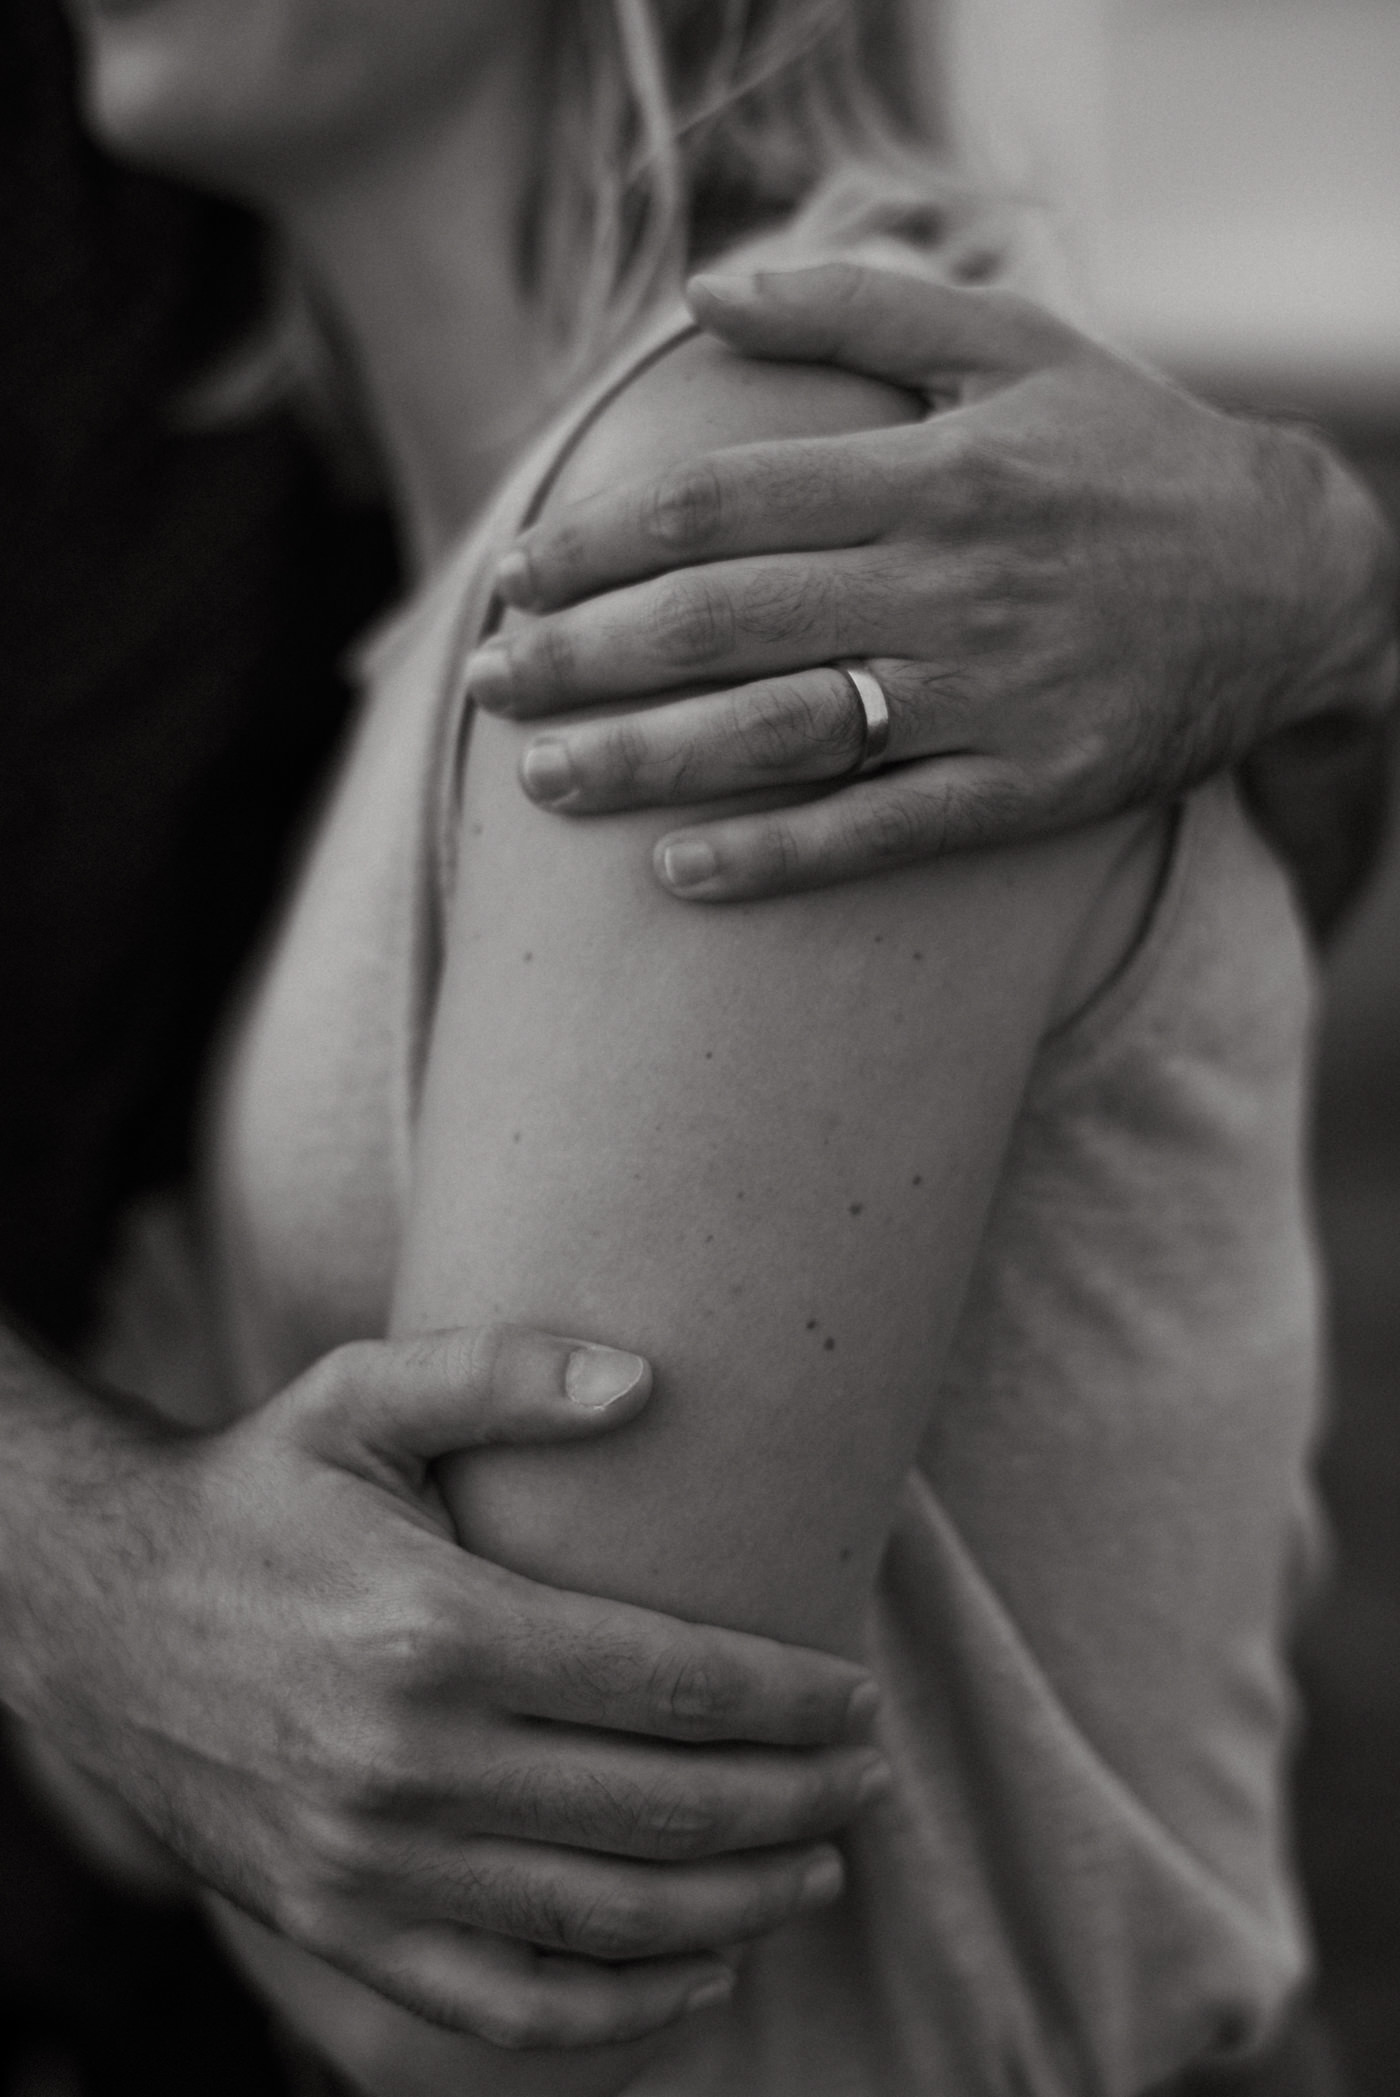 black and white images of husbands hands on wifes arm